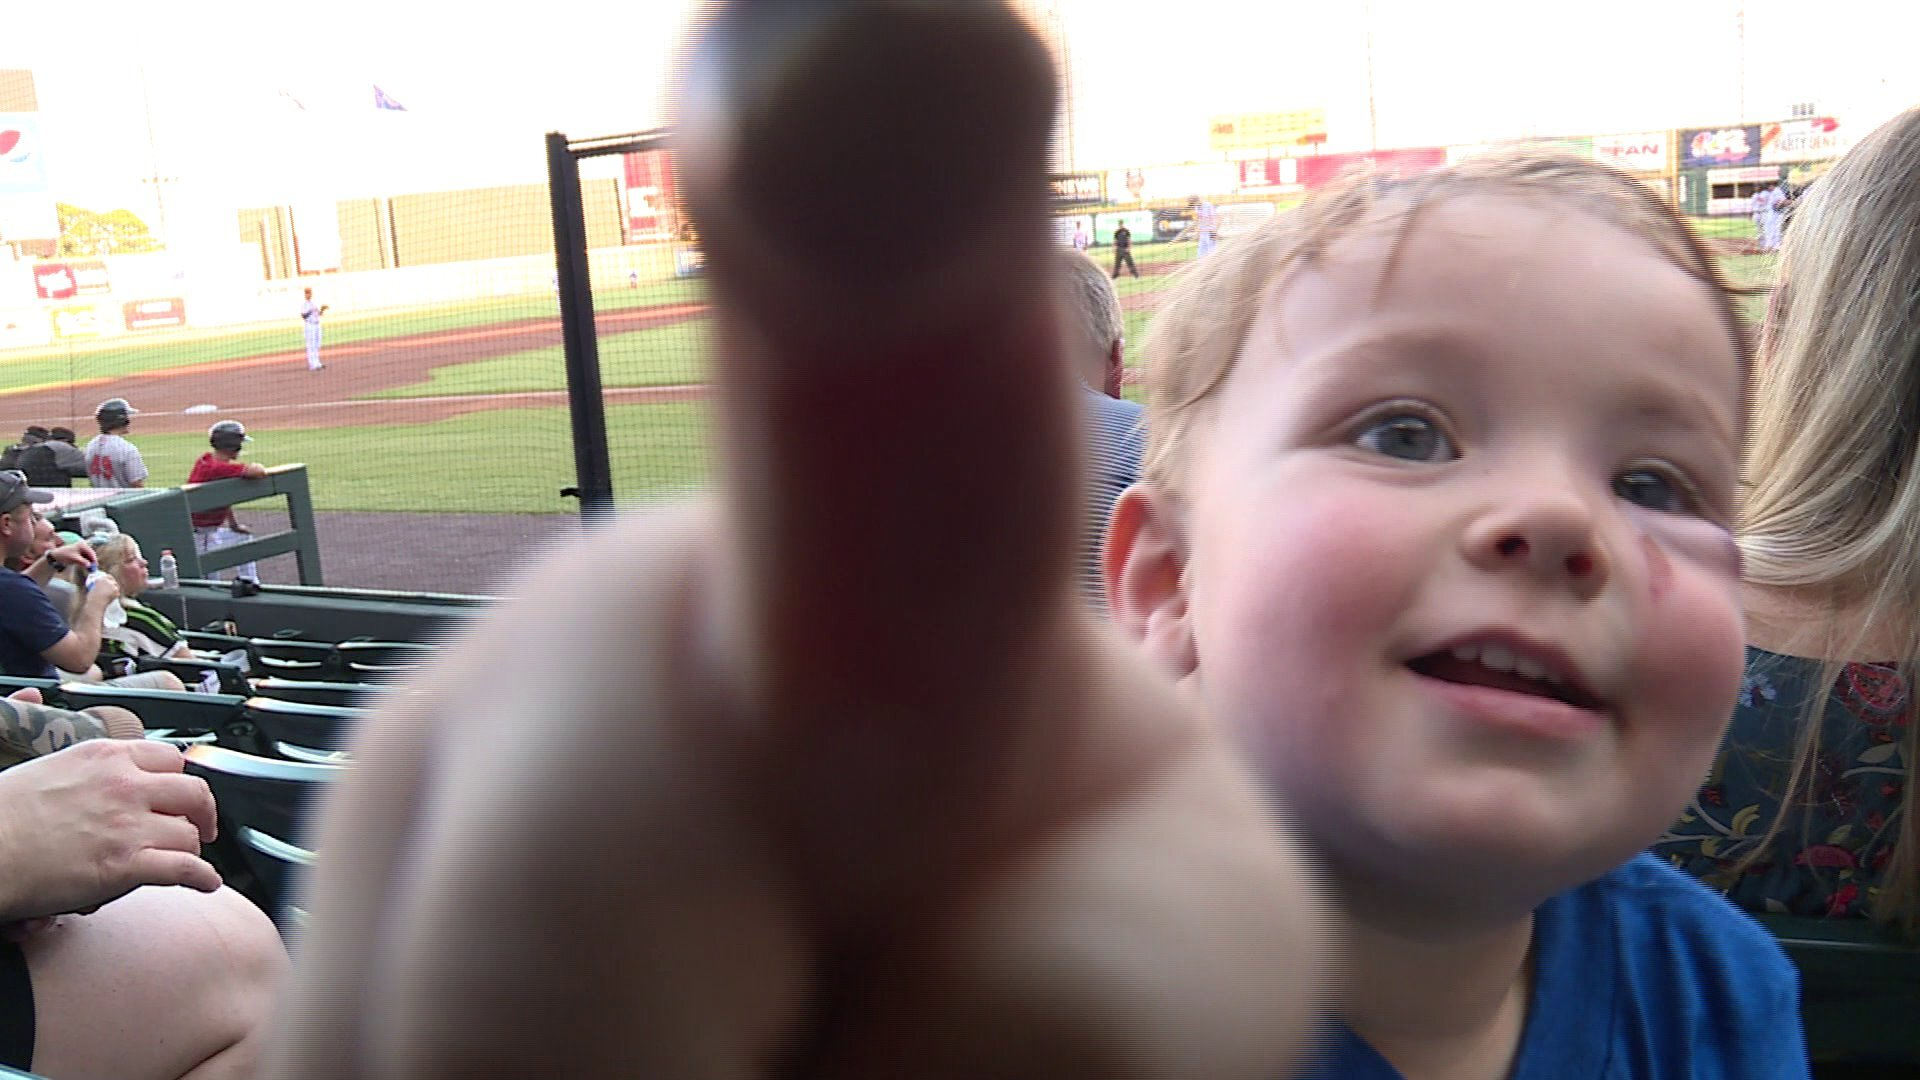 Photos: 2-year-old boy throwing out first pitch 'celebrates everything he'sovercome'